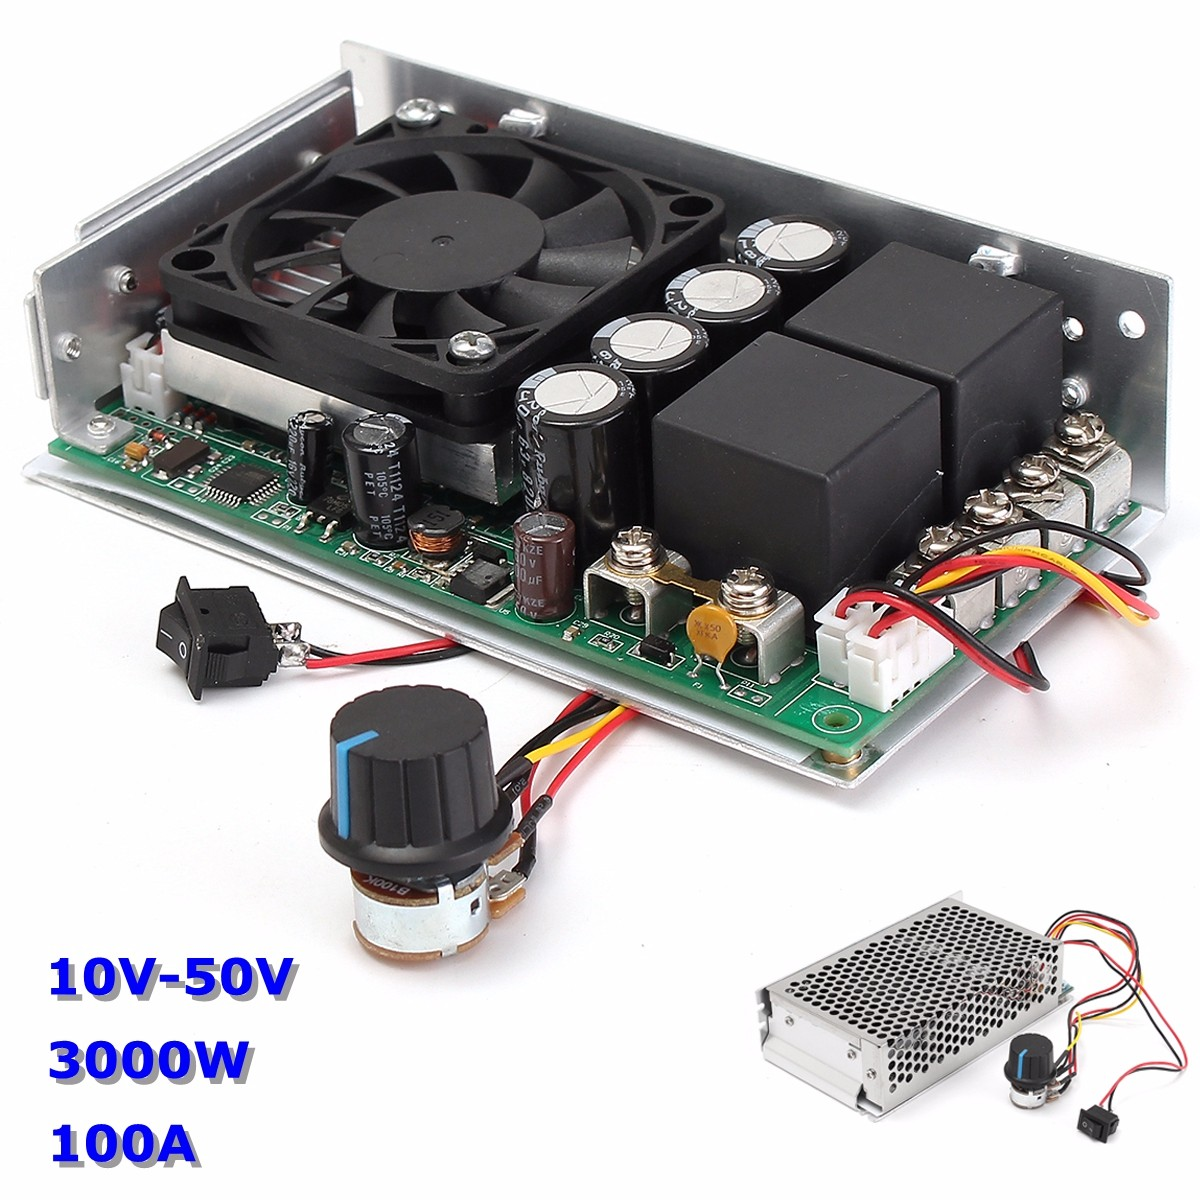 10-50V DC 100A 3000W Programable Reversible DC Motor Speed Controller PWM Control Reversible Electric Motor 10 50v 100a 5000w reversible dc motor speed controller pwm control soft start high quality